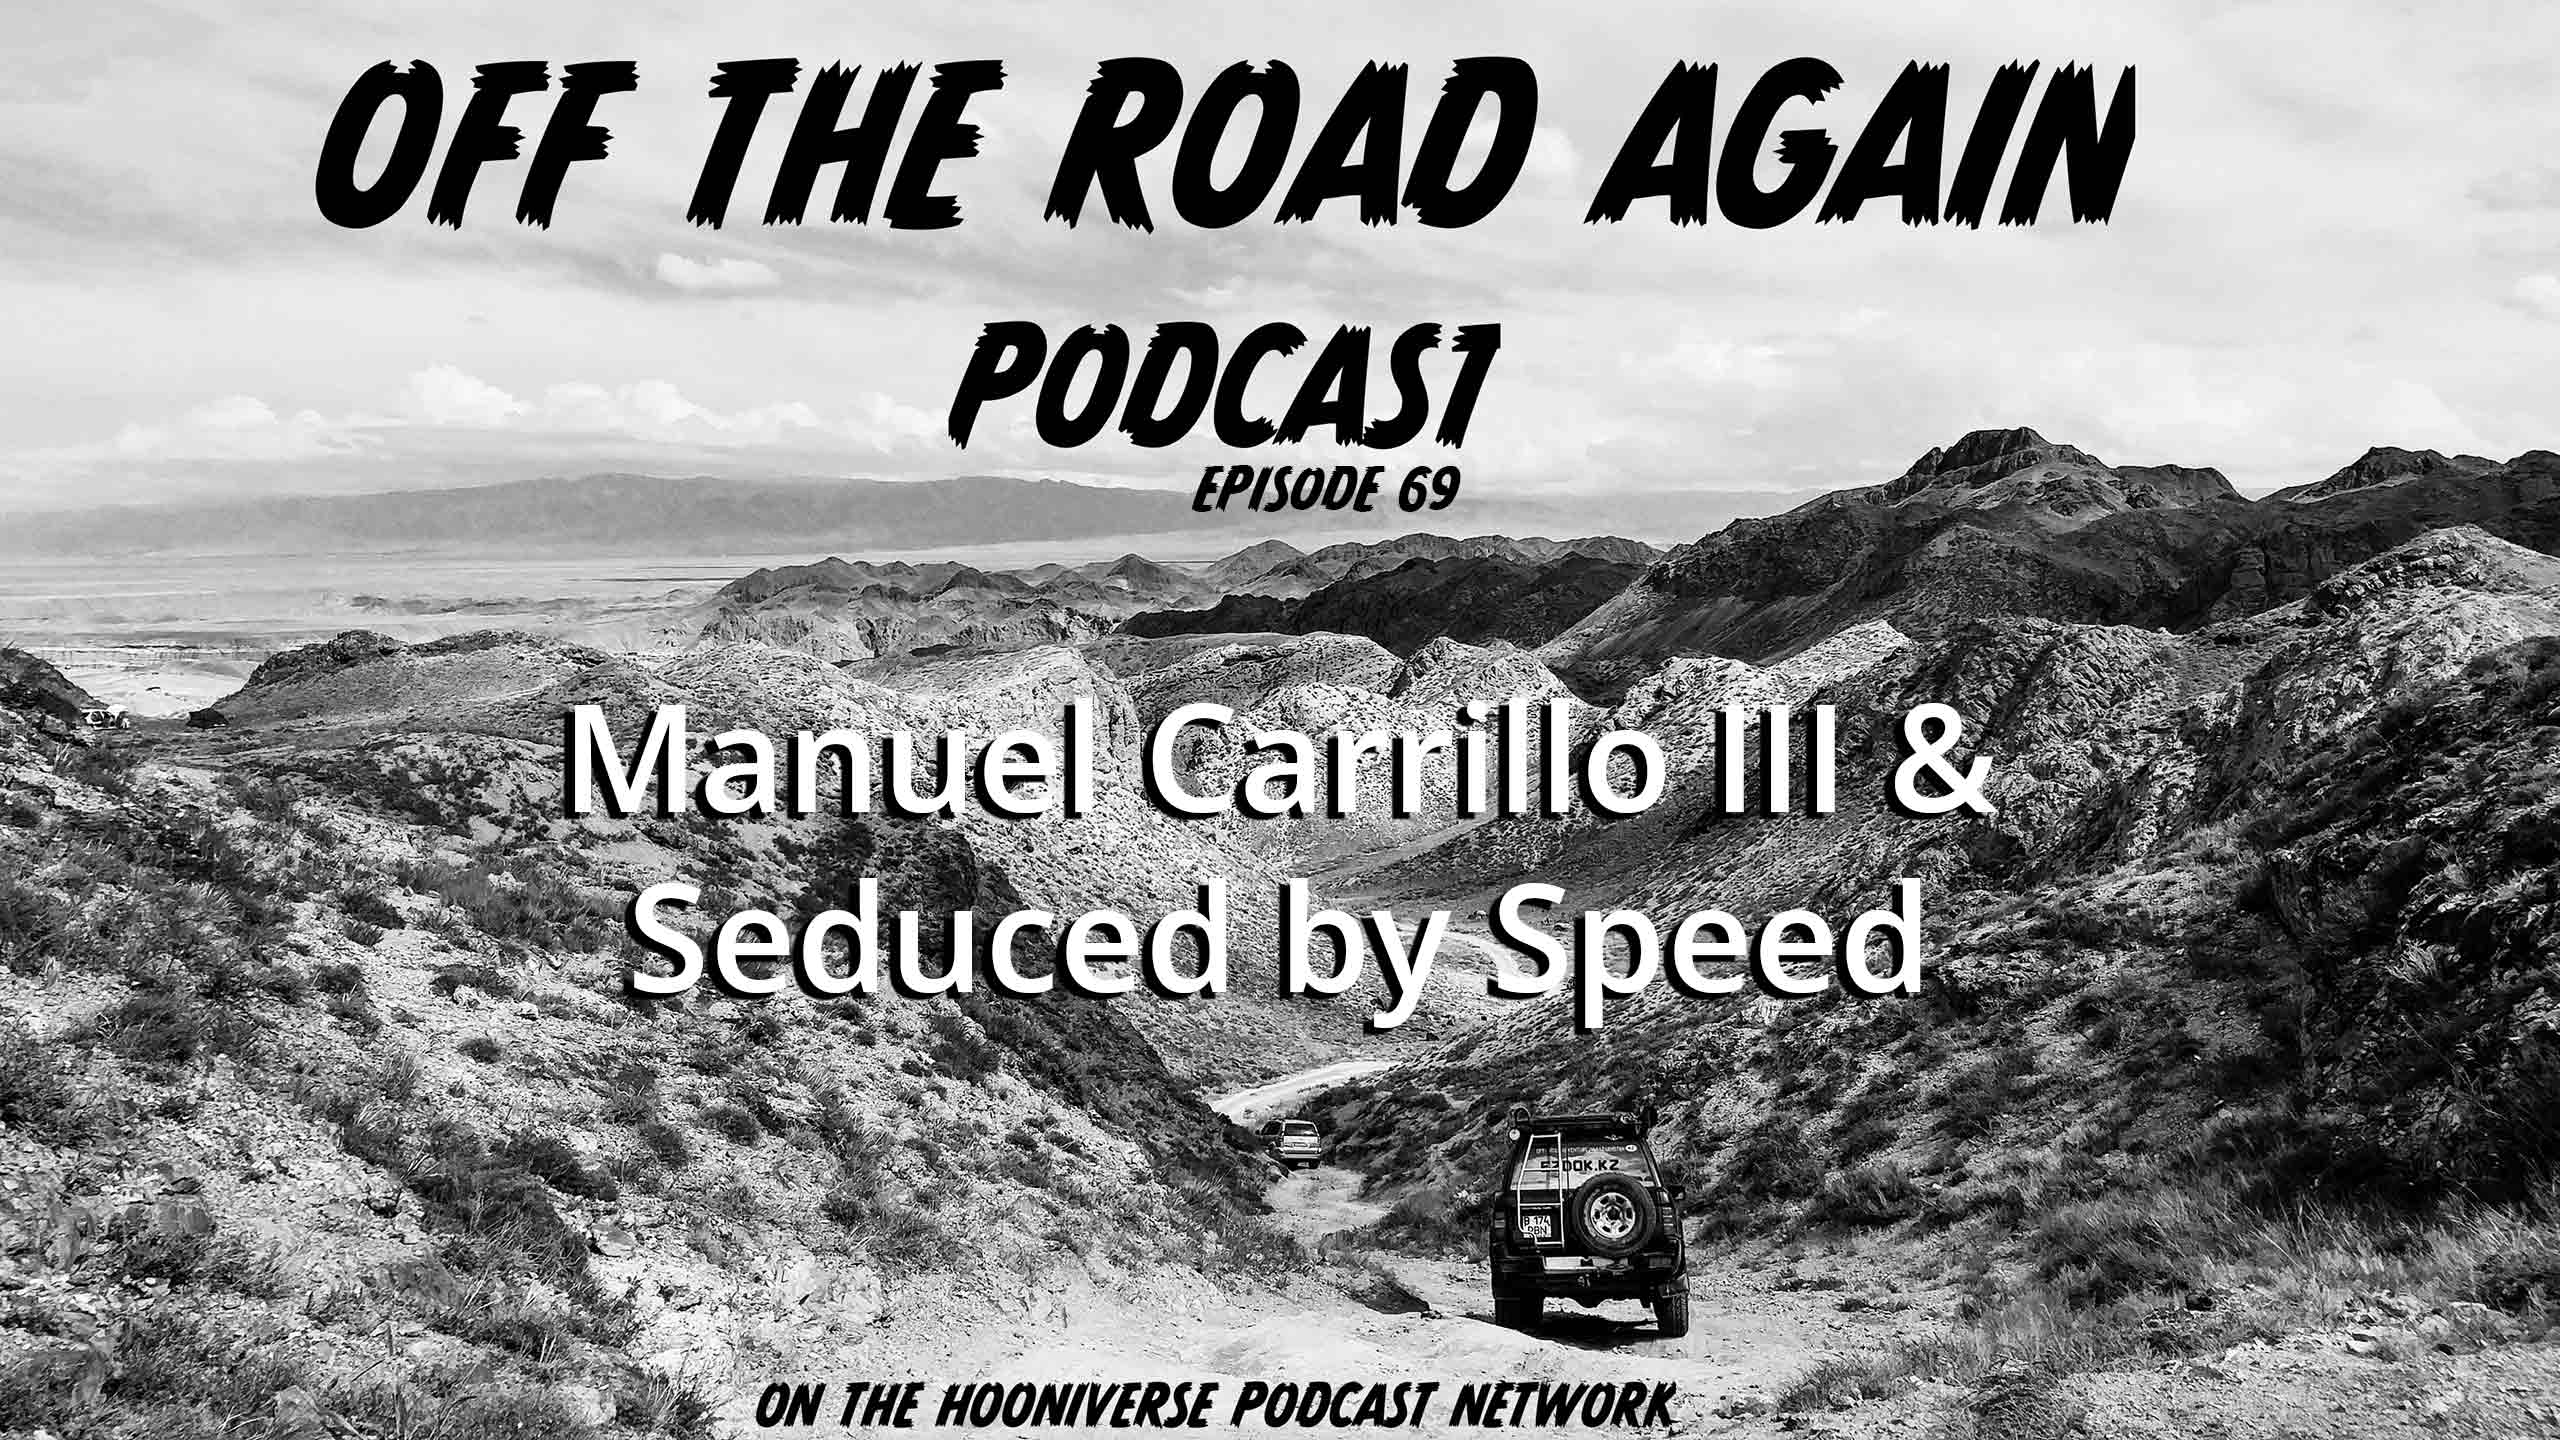 Manuel-Carrillo-III-Seduced-by-Speed-Off-The-Road-Again-Podcast-Episode-69